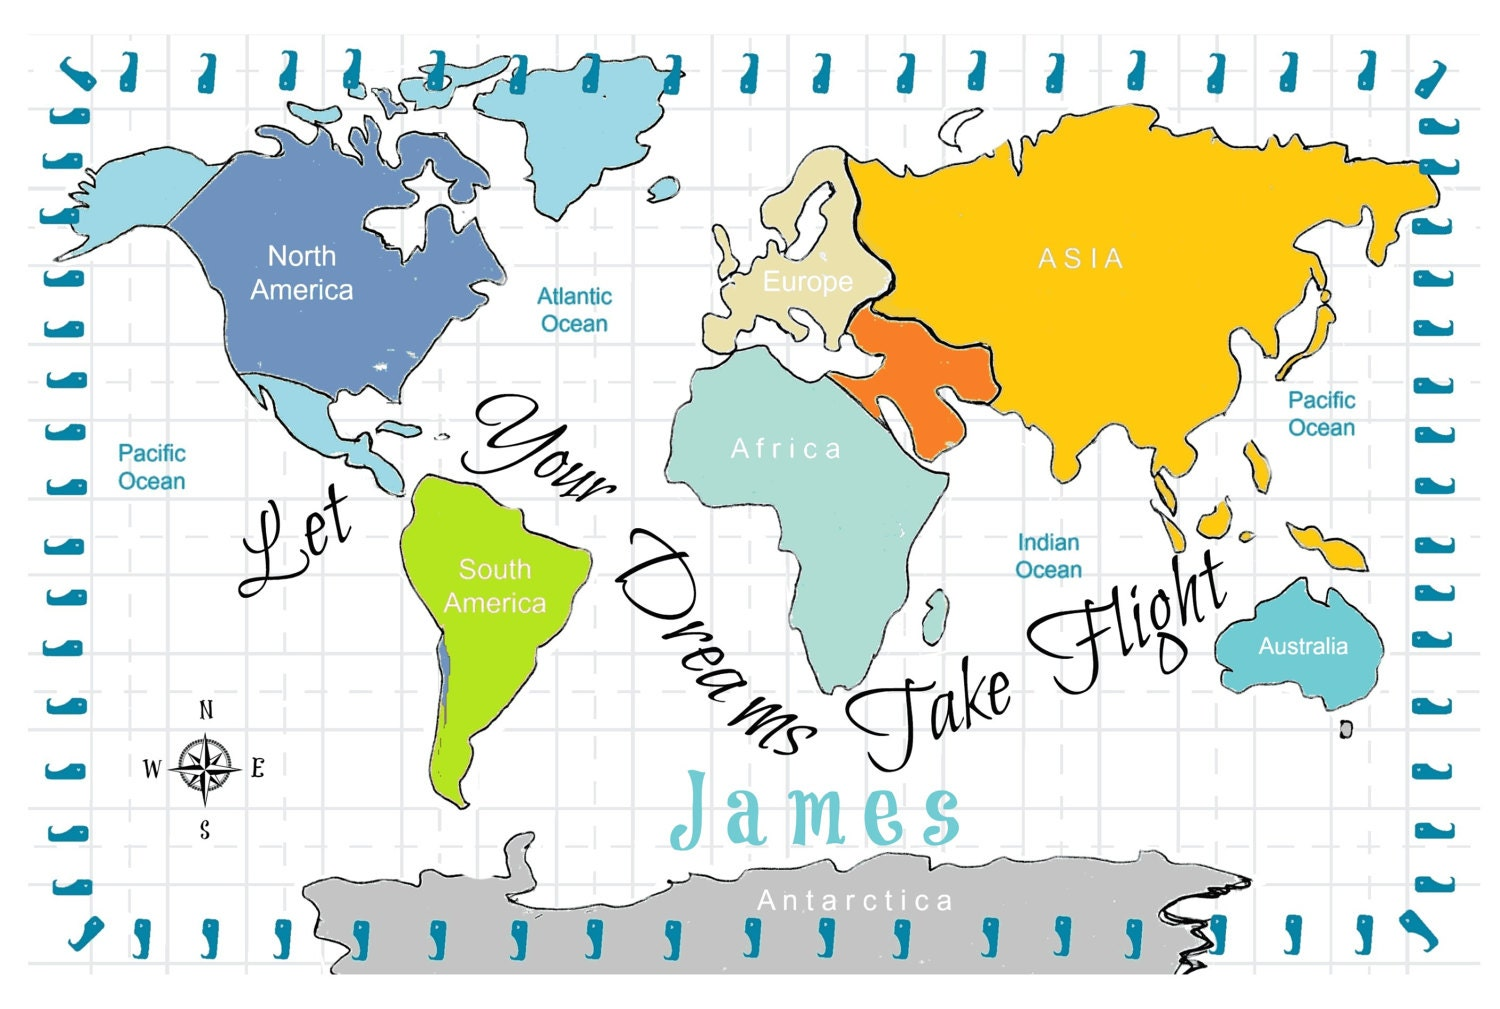 World map personalized dreams turquoise 2 layer blanket 2 sizes world map personalized dreams turquoise 2 layer blanket 2 sizes colorful custom kids toddler name blanket nursery decor baby gift gumiabroncs Choice Image